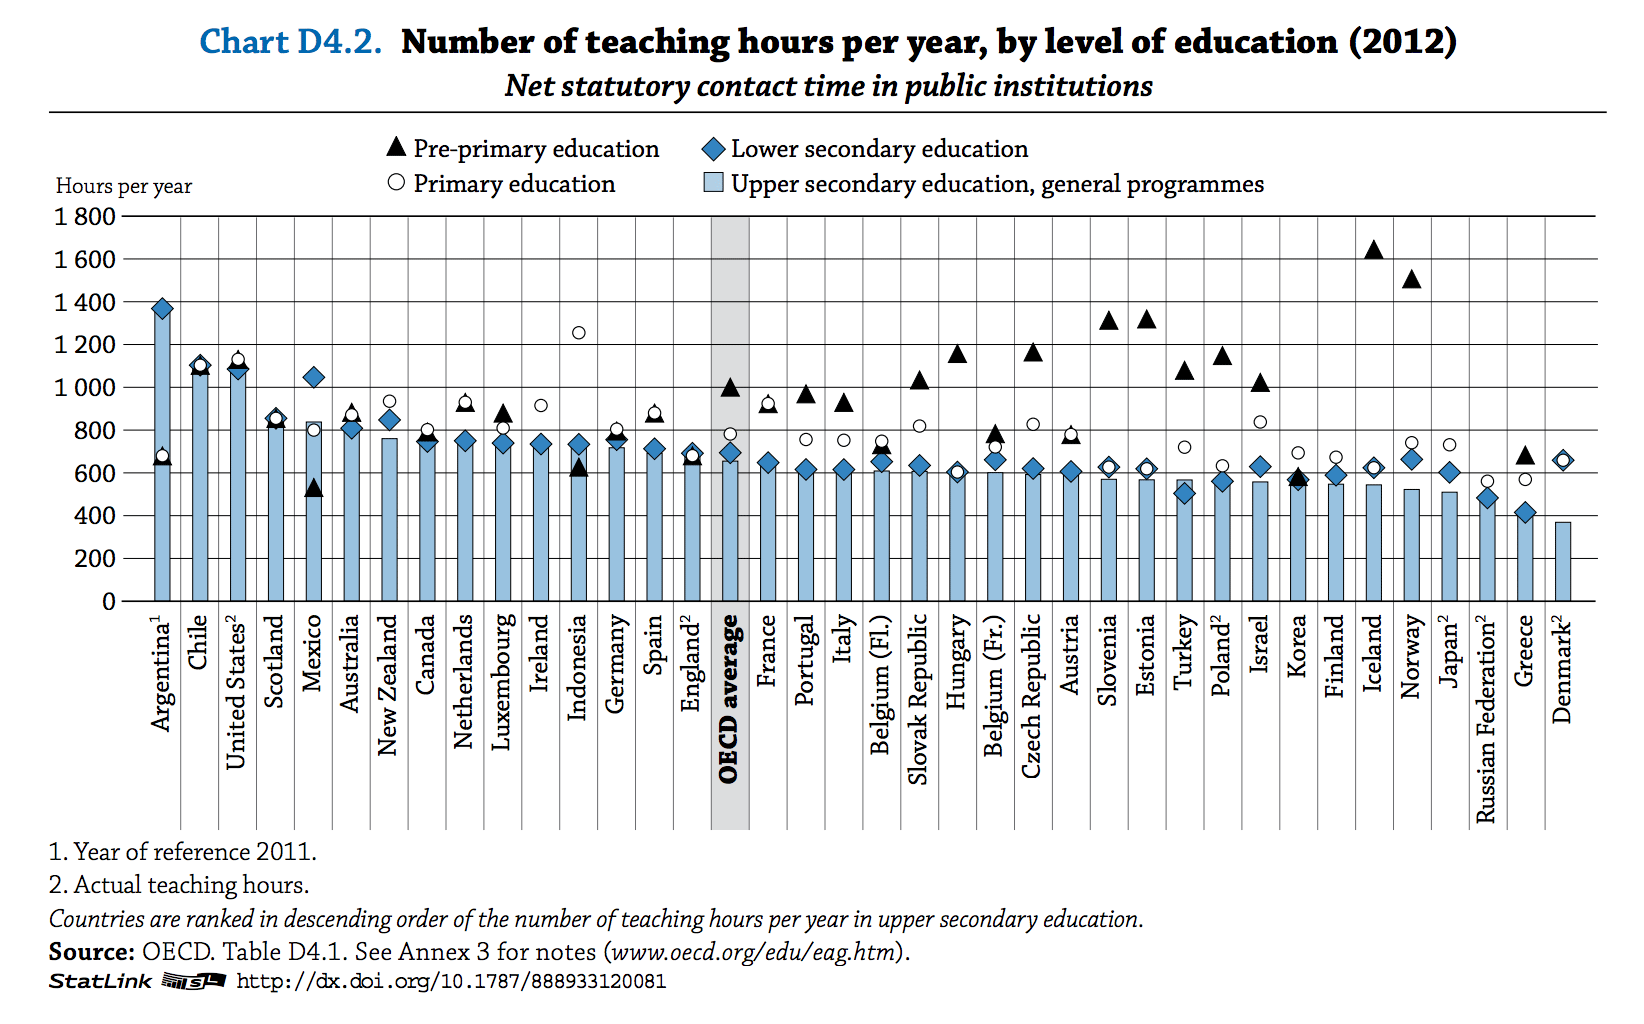 OECD_TeachingHours